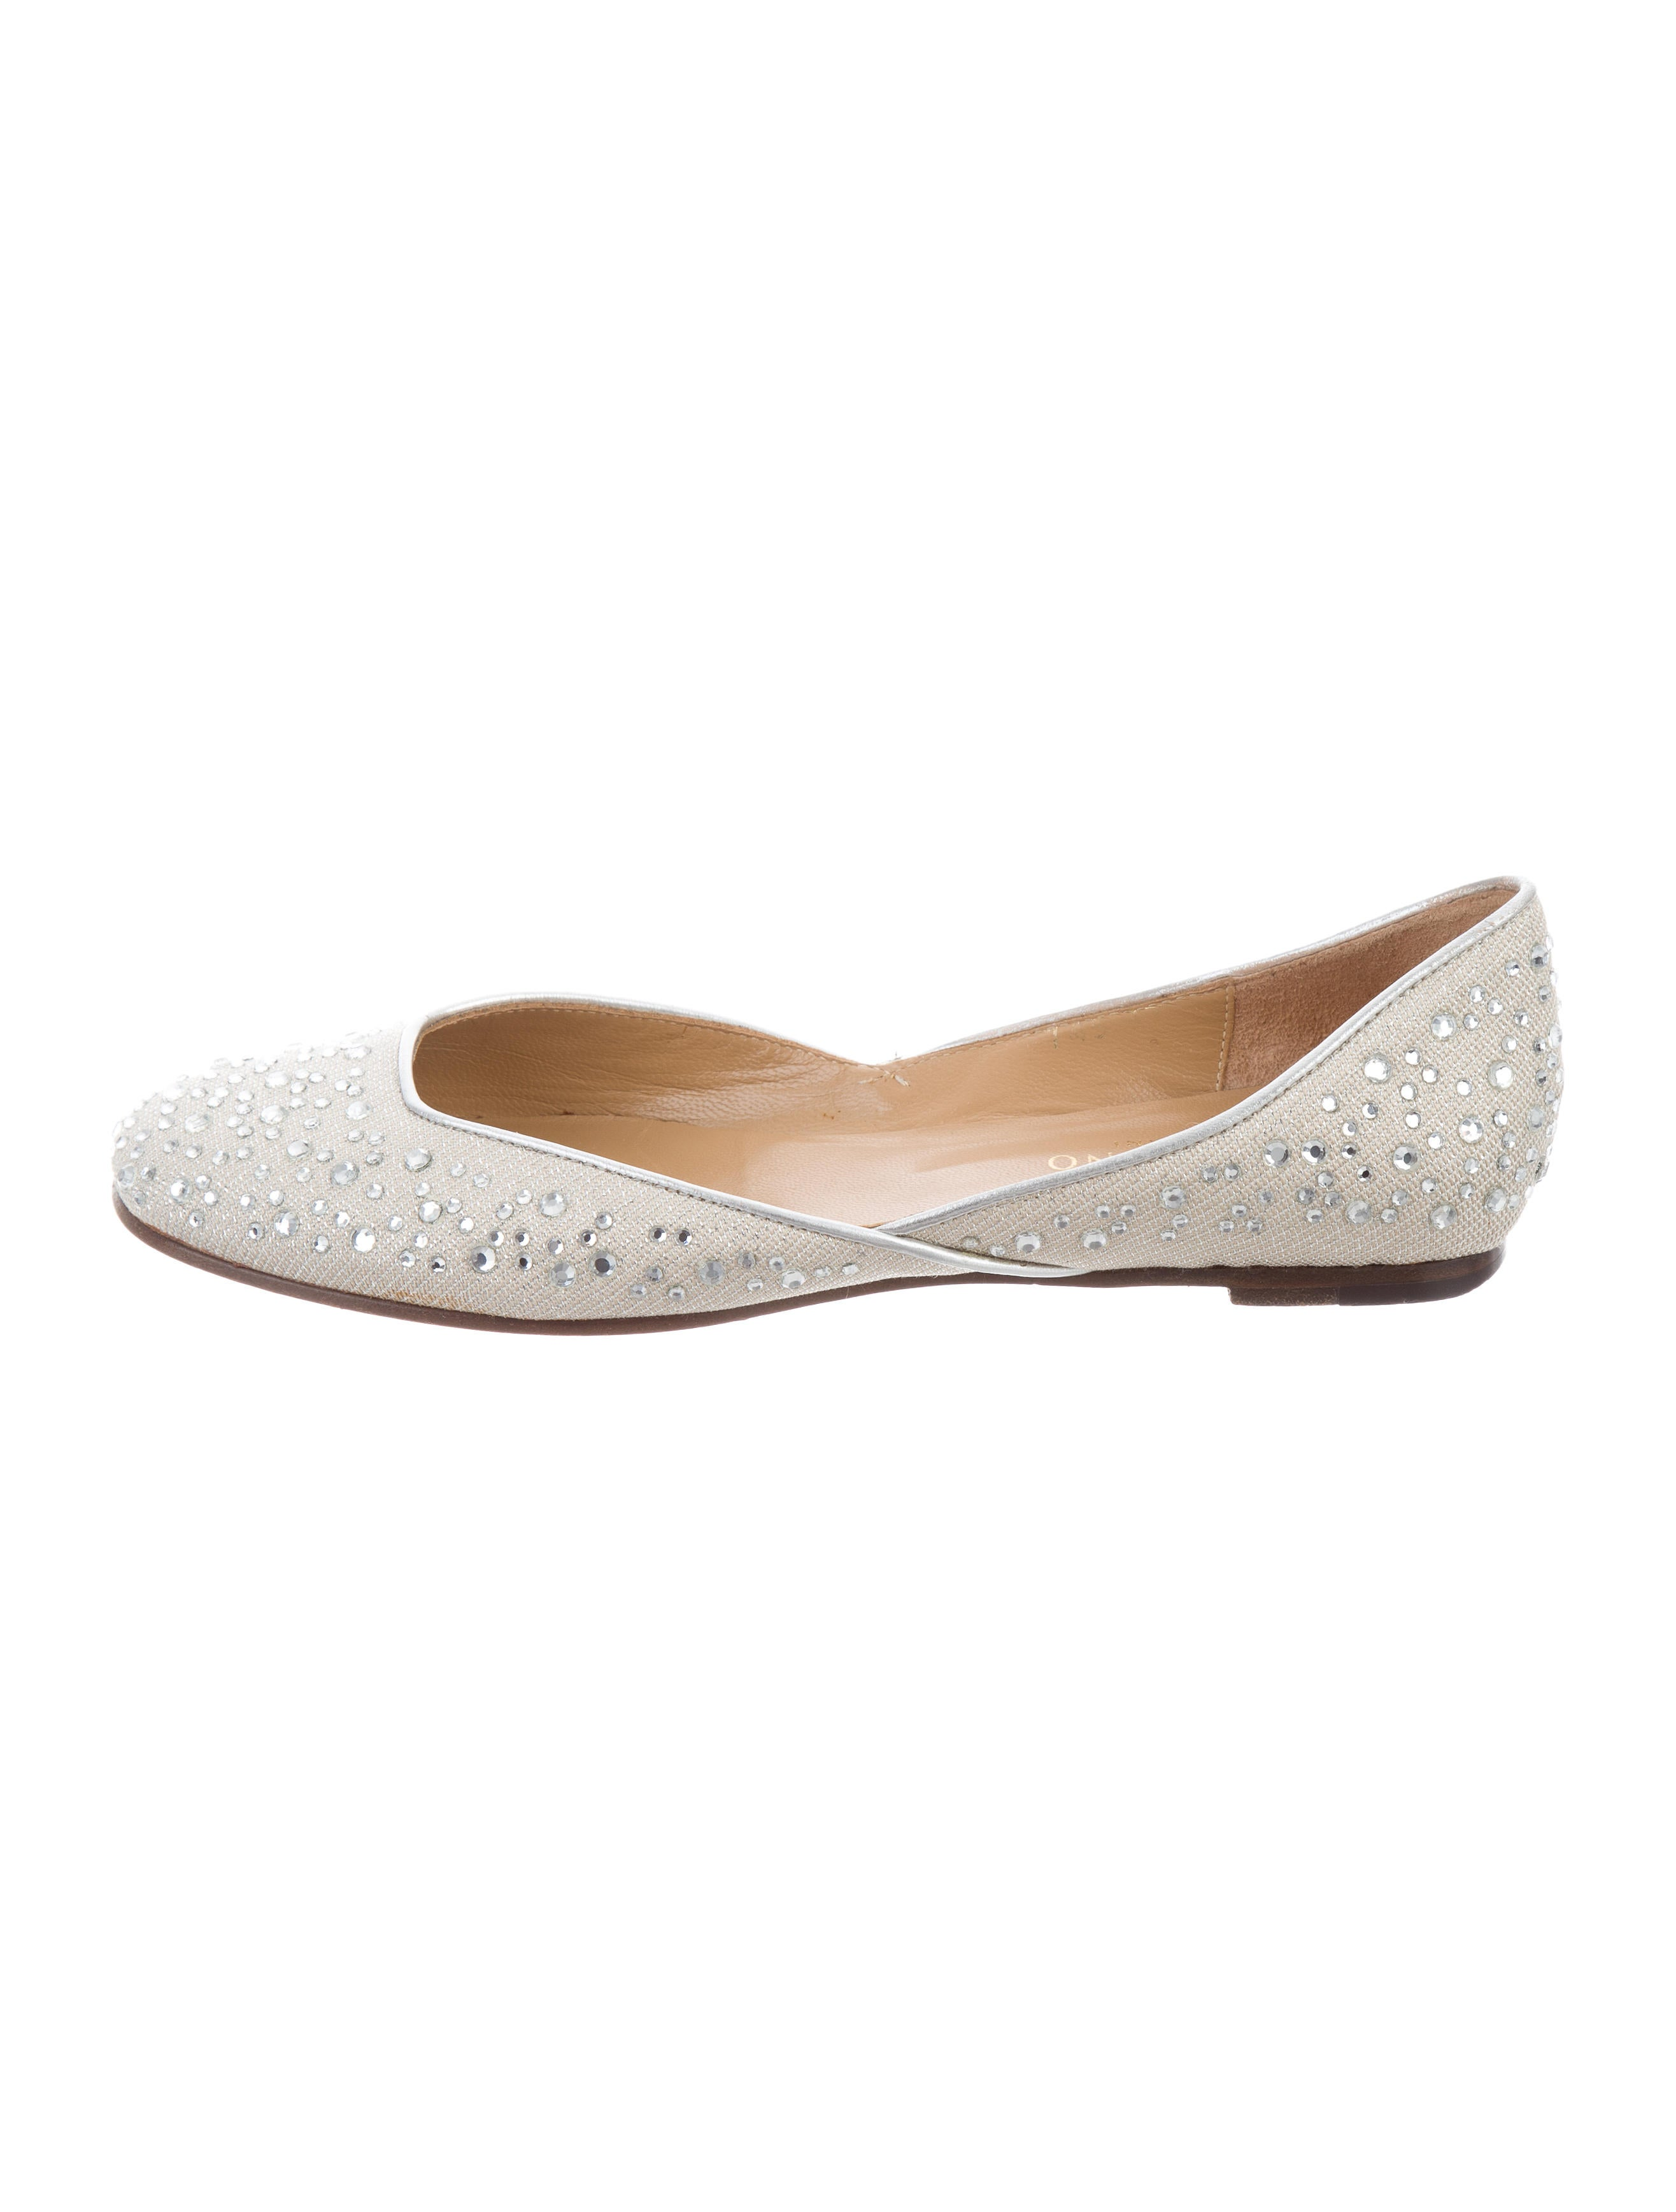 Valentino Woven Embellished Flats perfect cheap online buy cheap pay with paypal cheap sale find great sale wide range of pyb4X9i